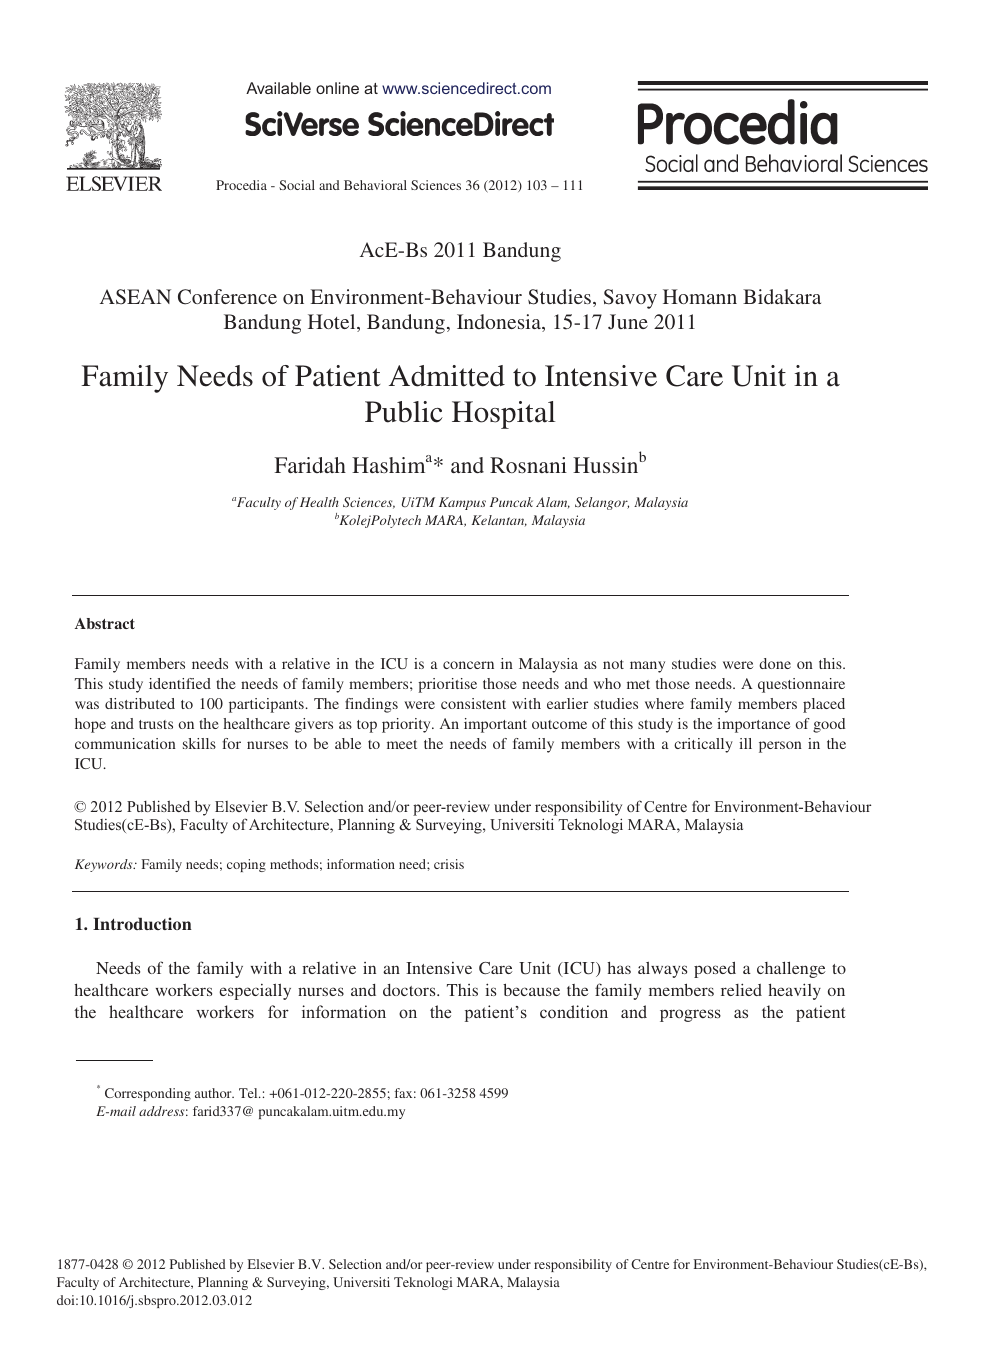 Family Needs of Patient Admitted to Intensive Care Unit in a